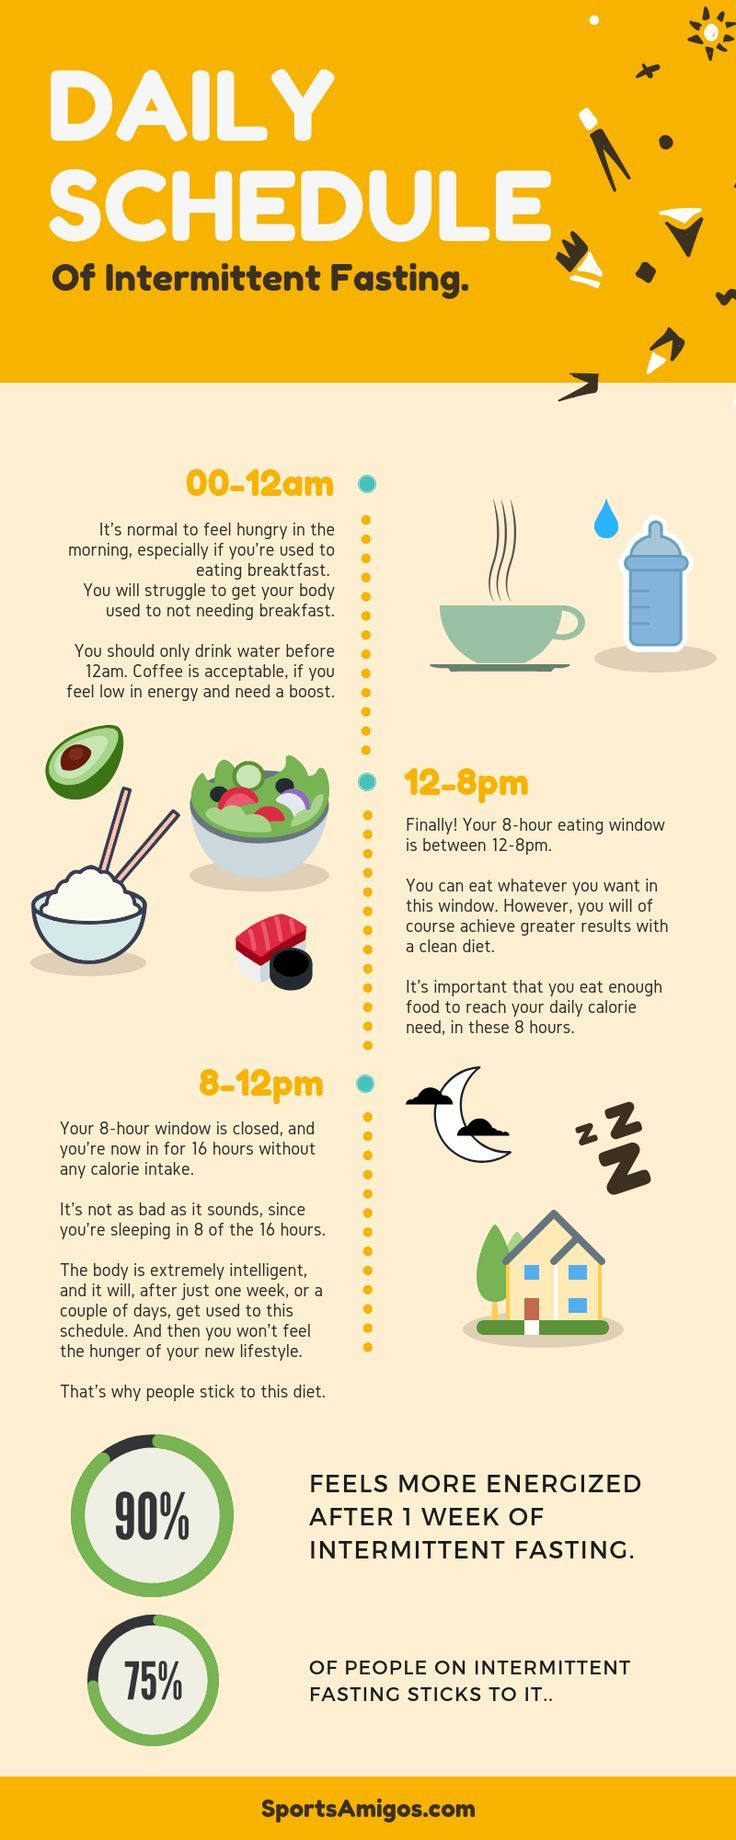 Food Infographic Daily Schedule Of Intermittent Fasting Infographic Infographic Description Daily Schedule Daily Fasting Food Infographic Intermittent Fasting What is addition principle